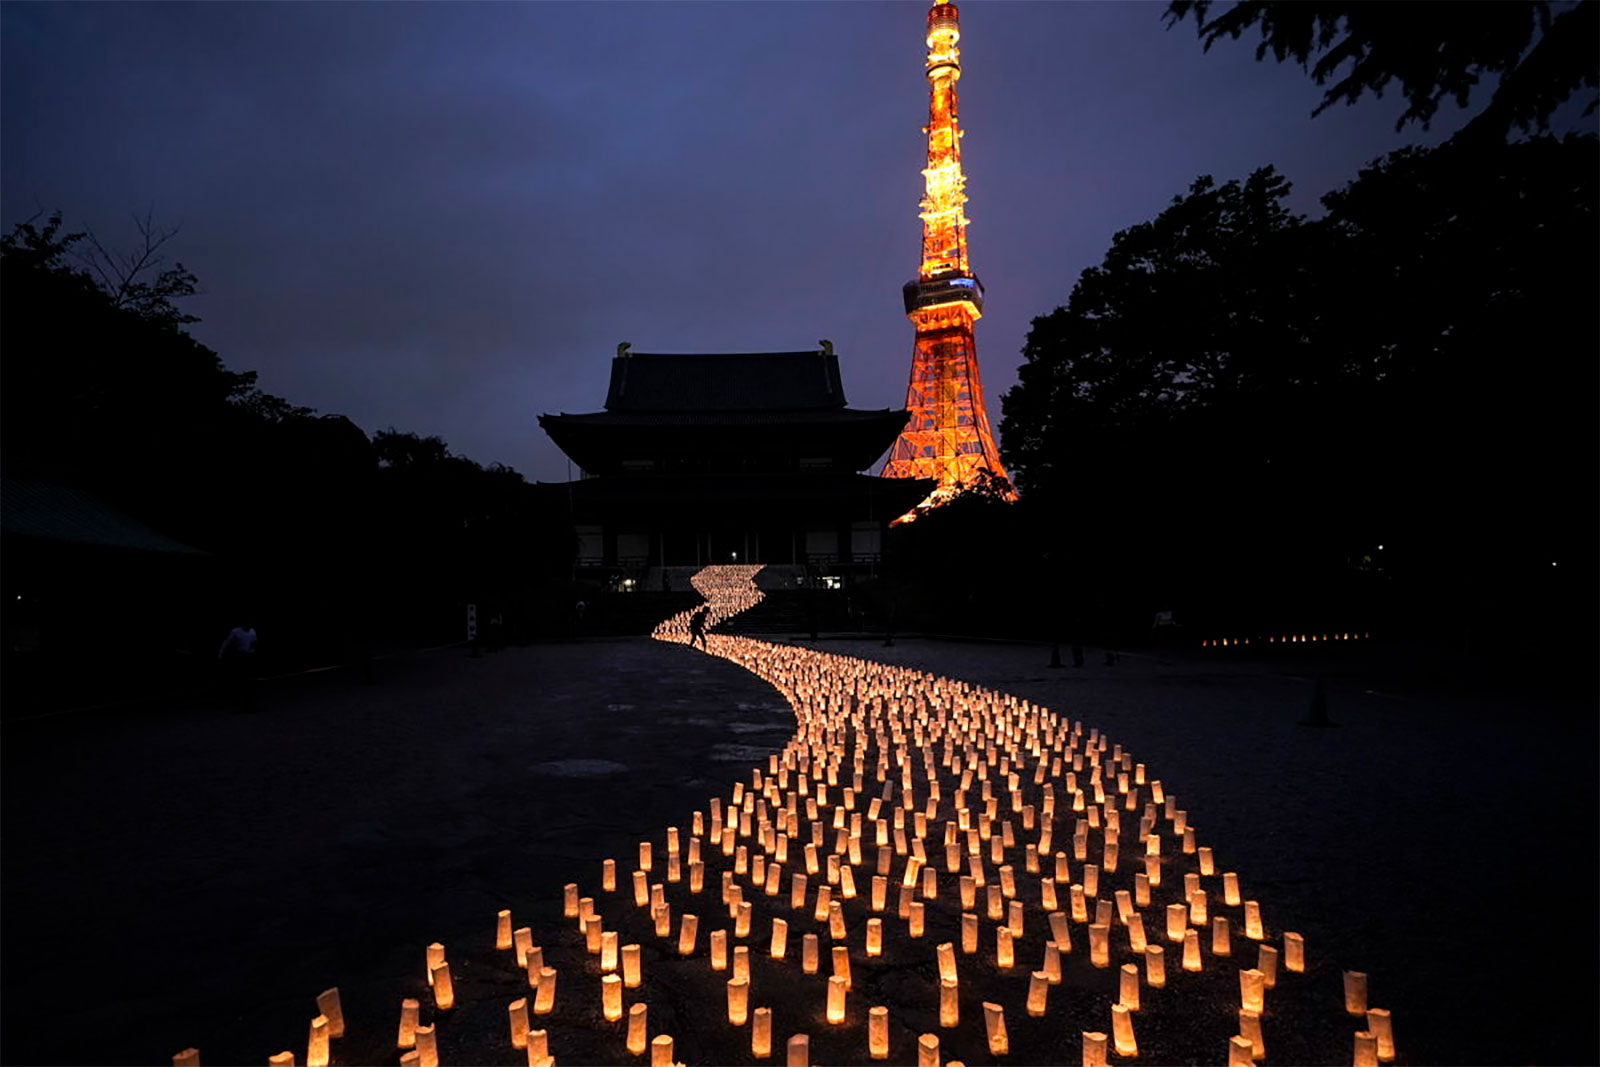 thousands of candles are arranged in the shape of the Milky Way to celebrate Tanabata, a Japanese star festival, at Zojoji Temple